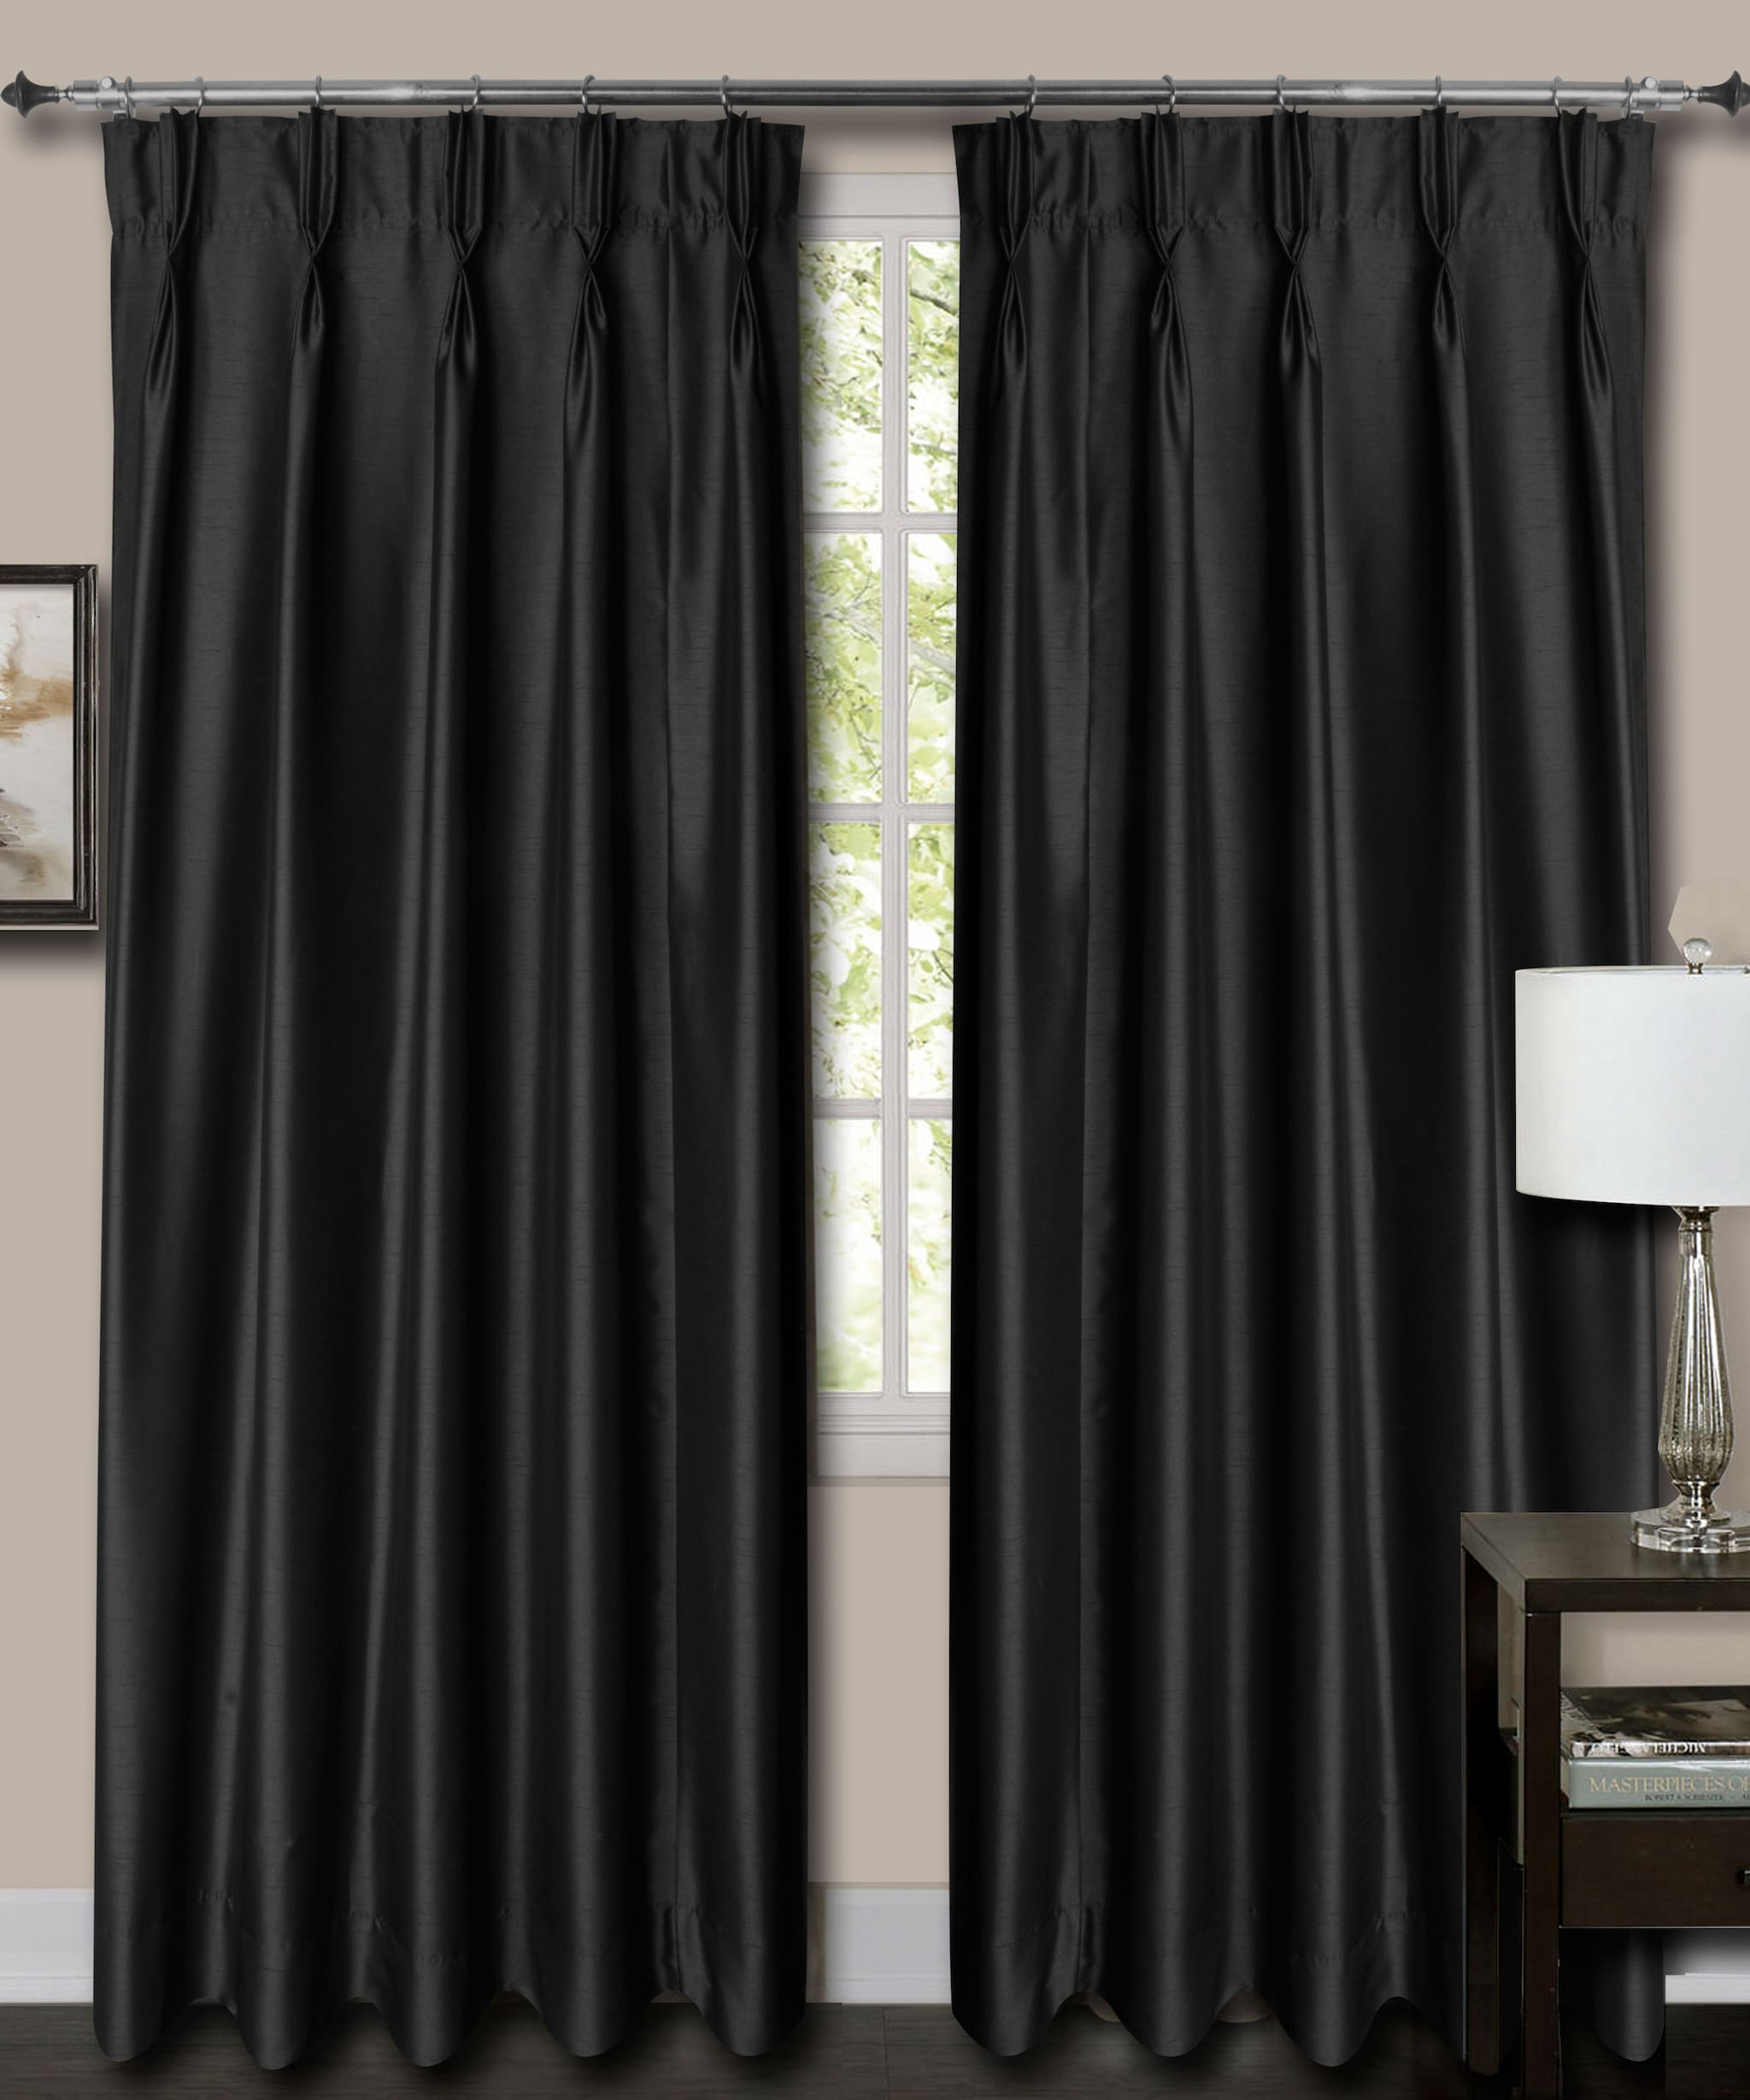 "French Pleat Top Black Faux Silk Dupioni Curtains. (24"" Wide,7 Feet Long,Without Lining)"